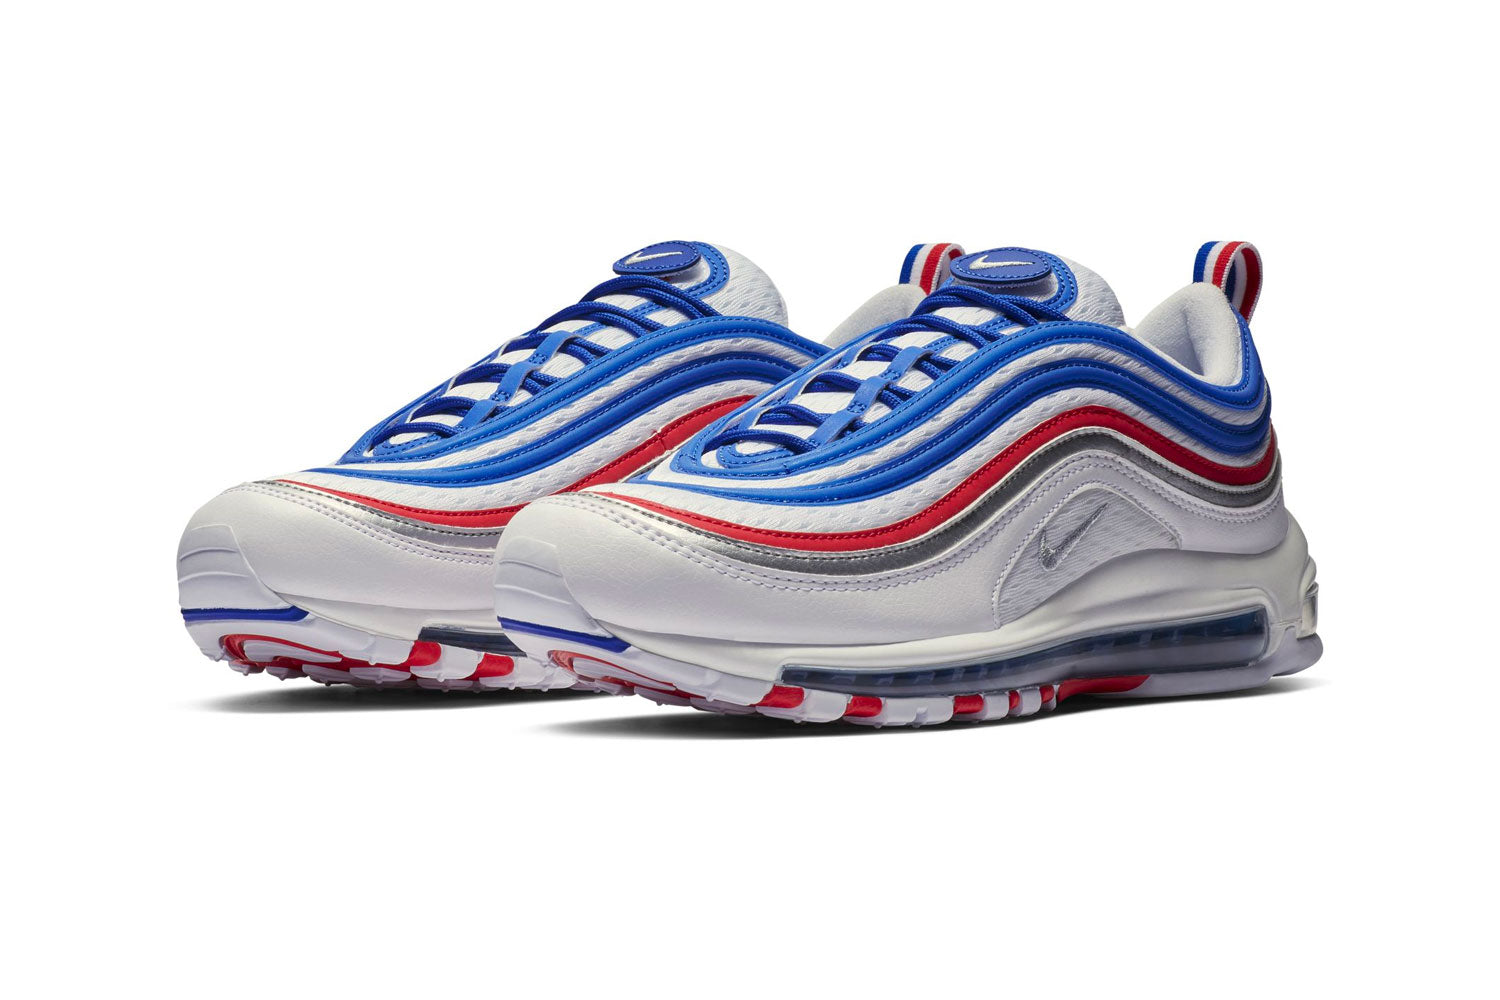 Nike Air Max 97 'France' Royal, Silver & Red | END.